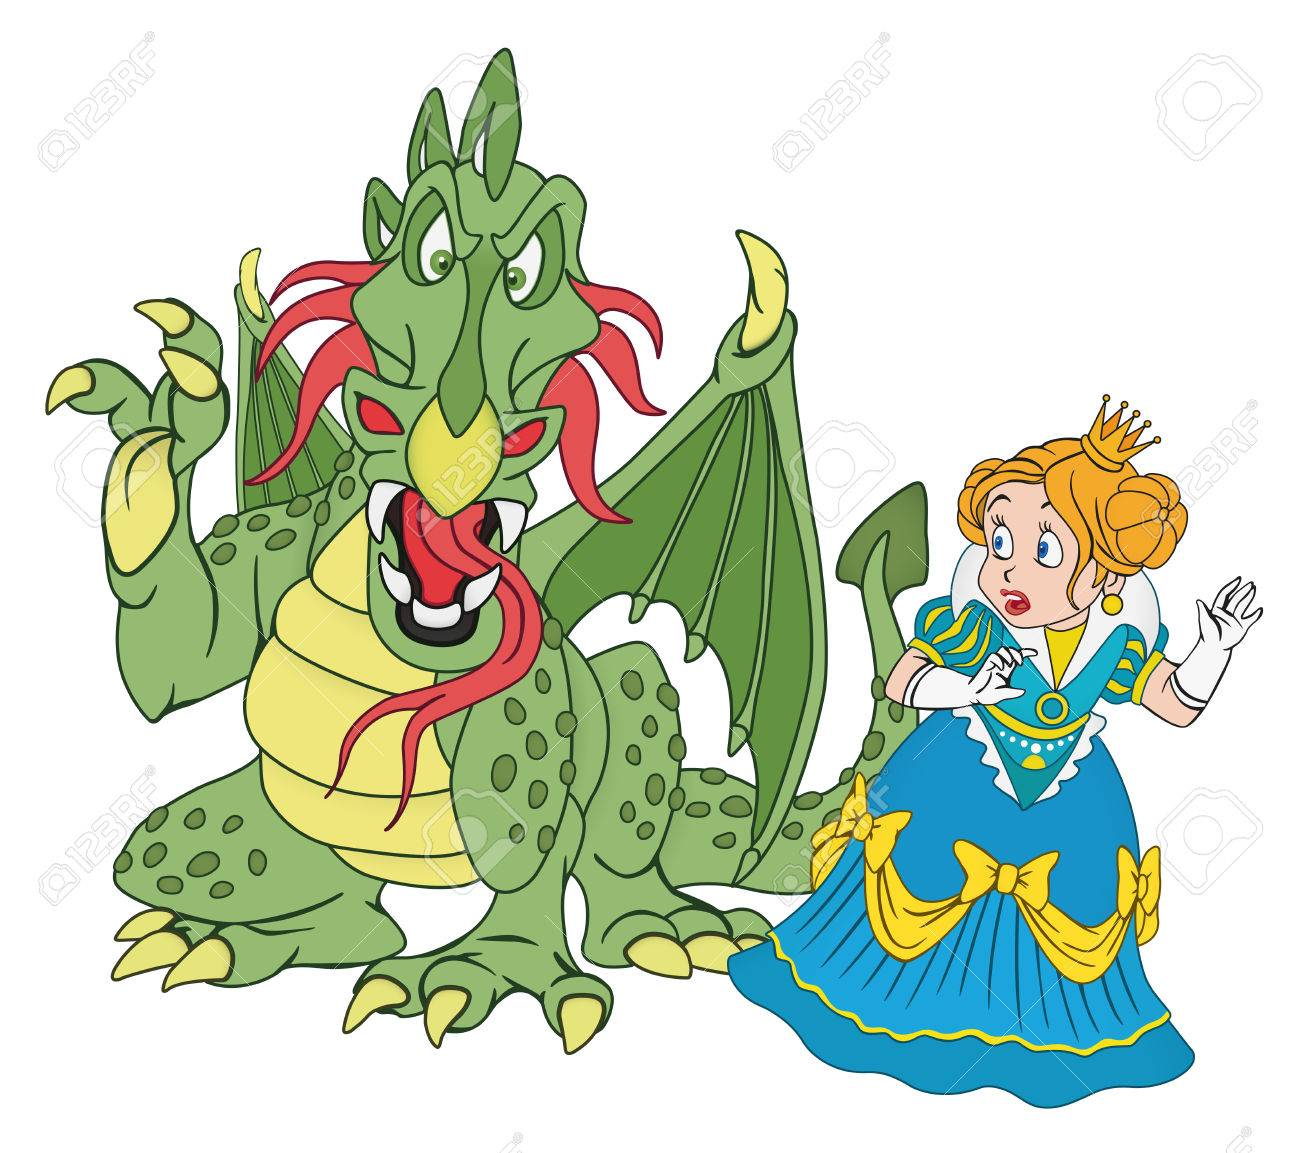 illustration of scared princess and angry dragon royalty free